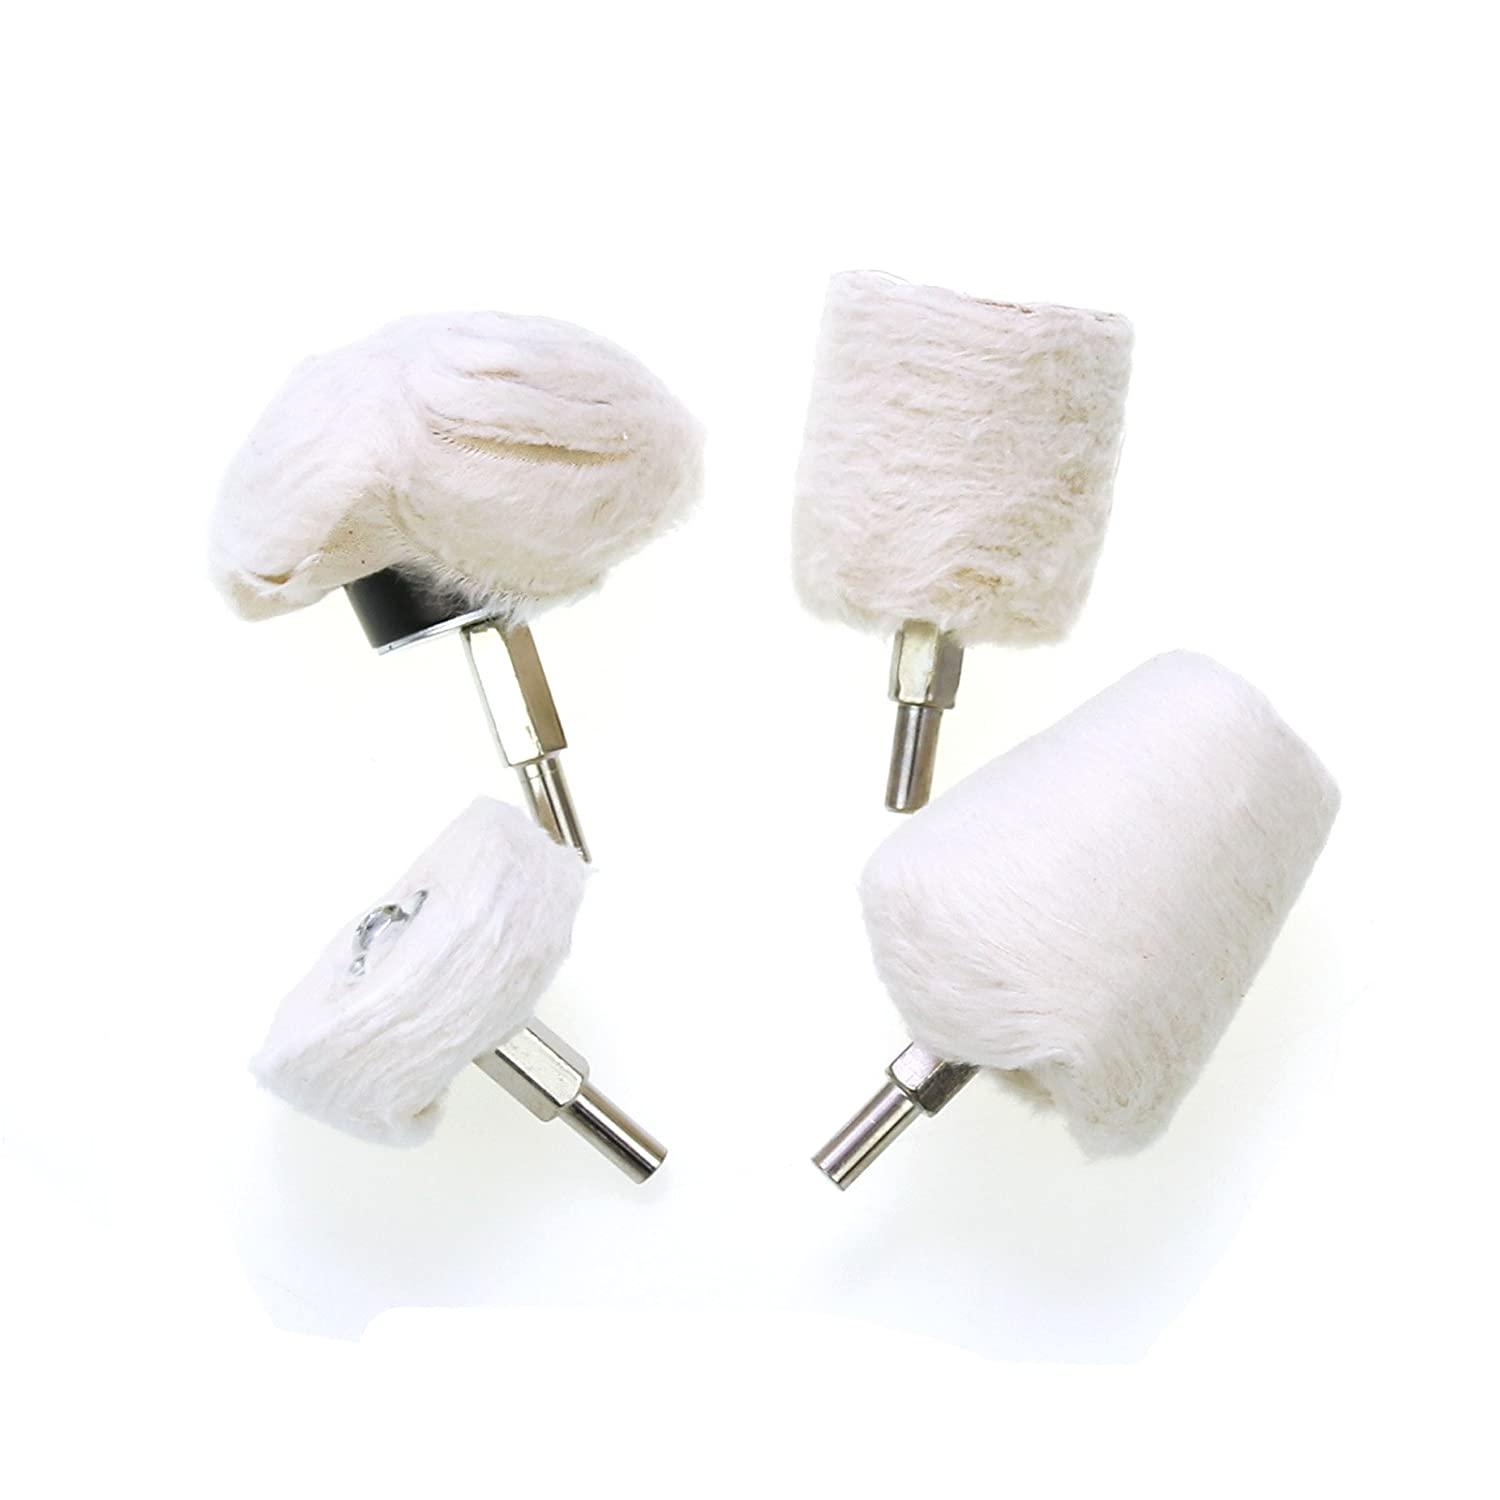 4Pcs Buffing Polishing Wheels, White Flannelette Polishing Wheel Cone/Column/Mushroom/T-Shaped Wheel Grinding Head With 1/4' ' Handle For Metal Aluminum, Stainless Steel, Chrome, Jewelry, Wood, Plastic, Ceramic, Glass Pomcat